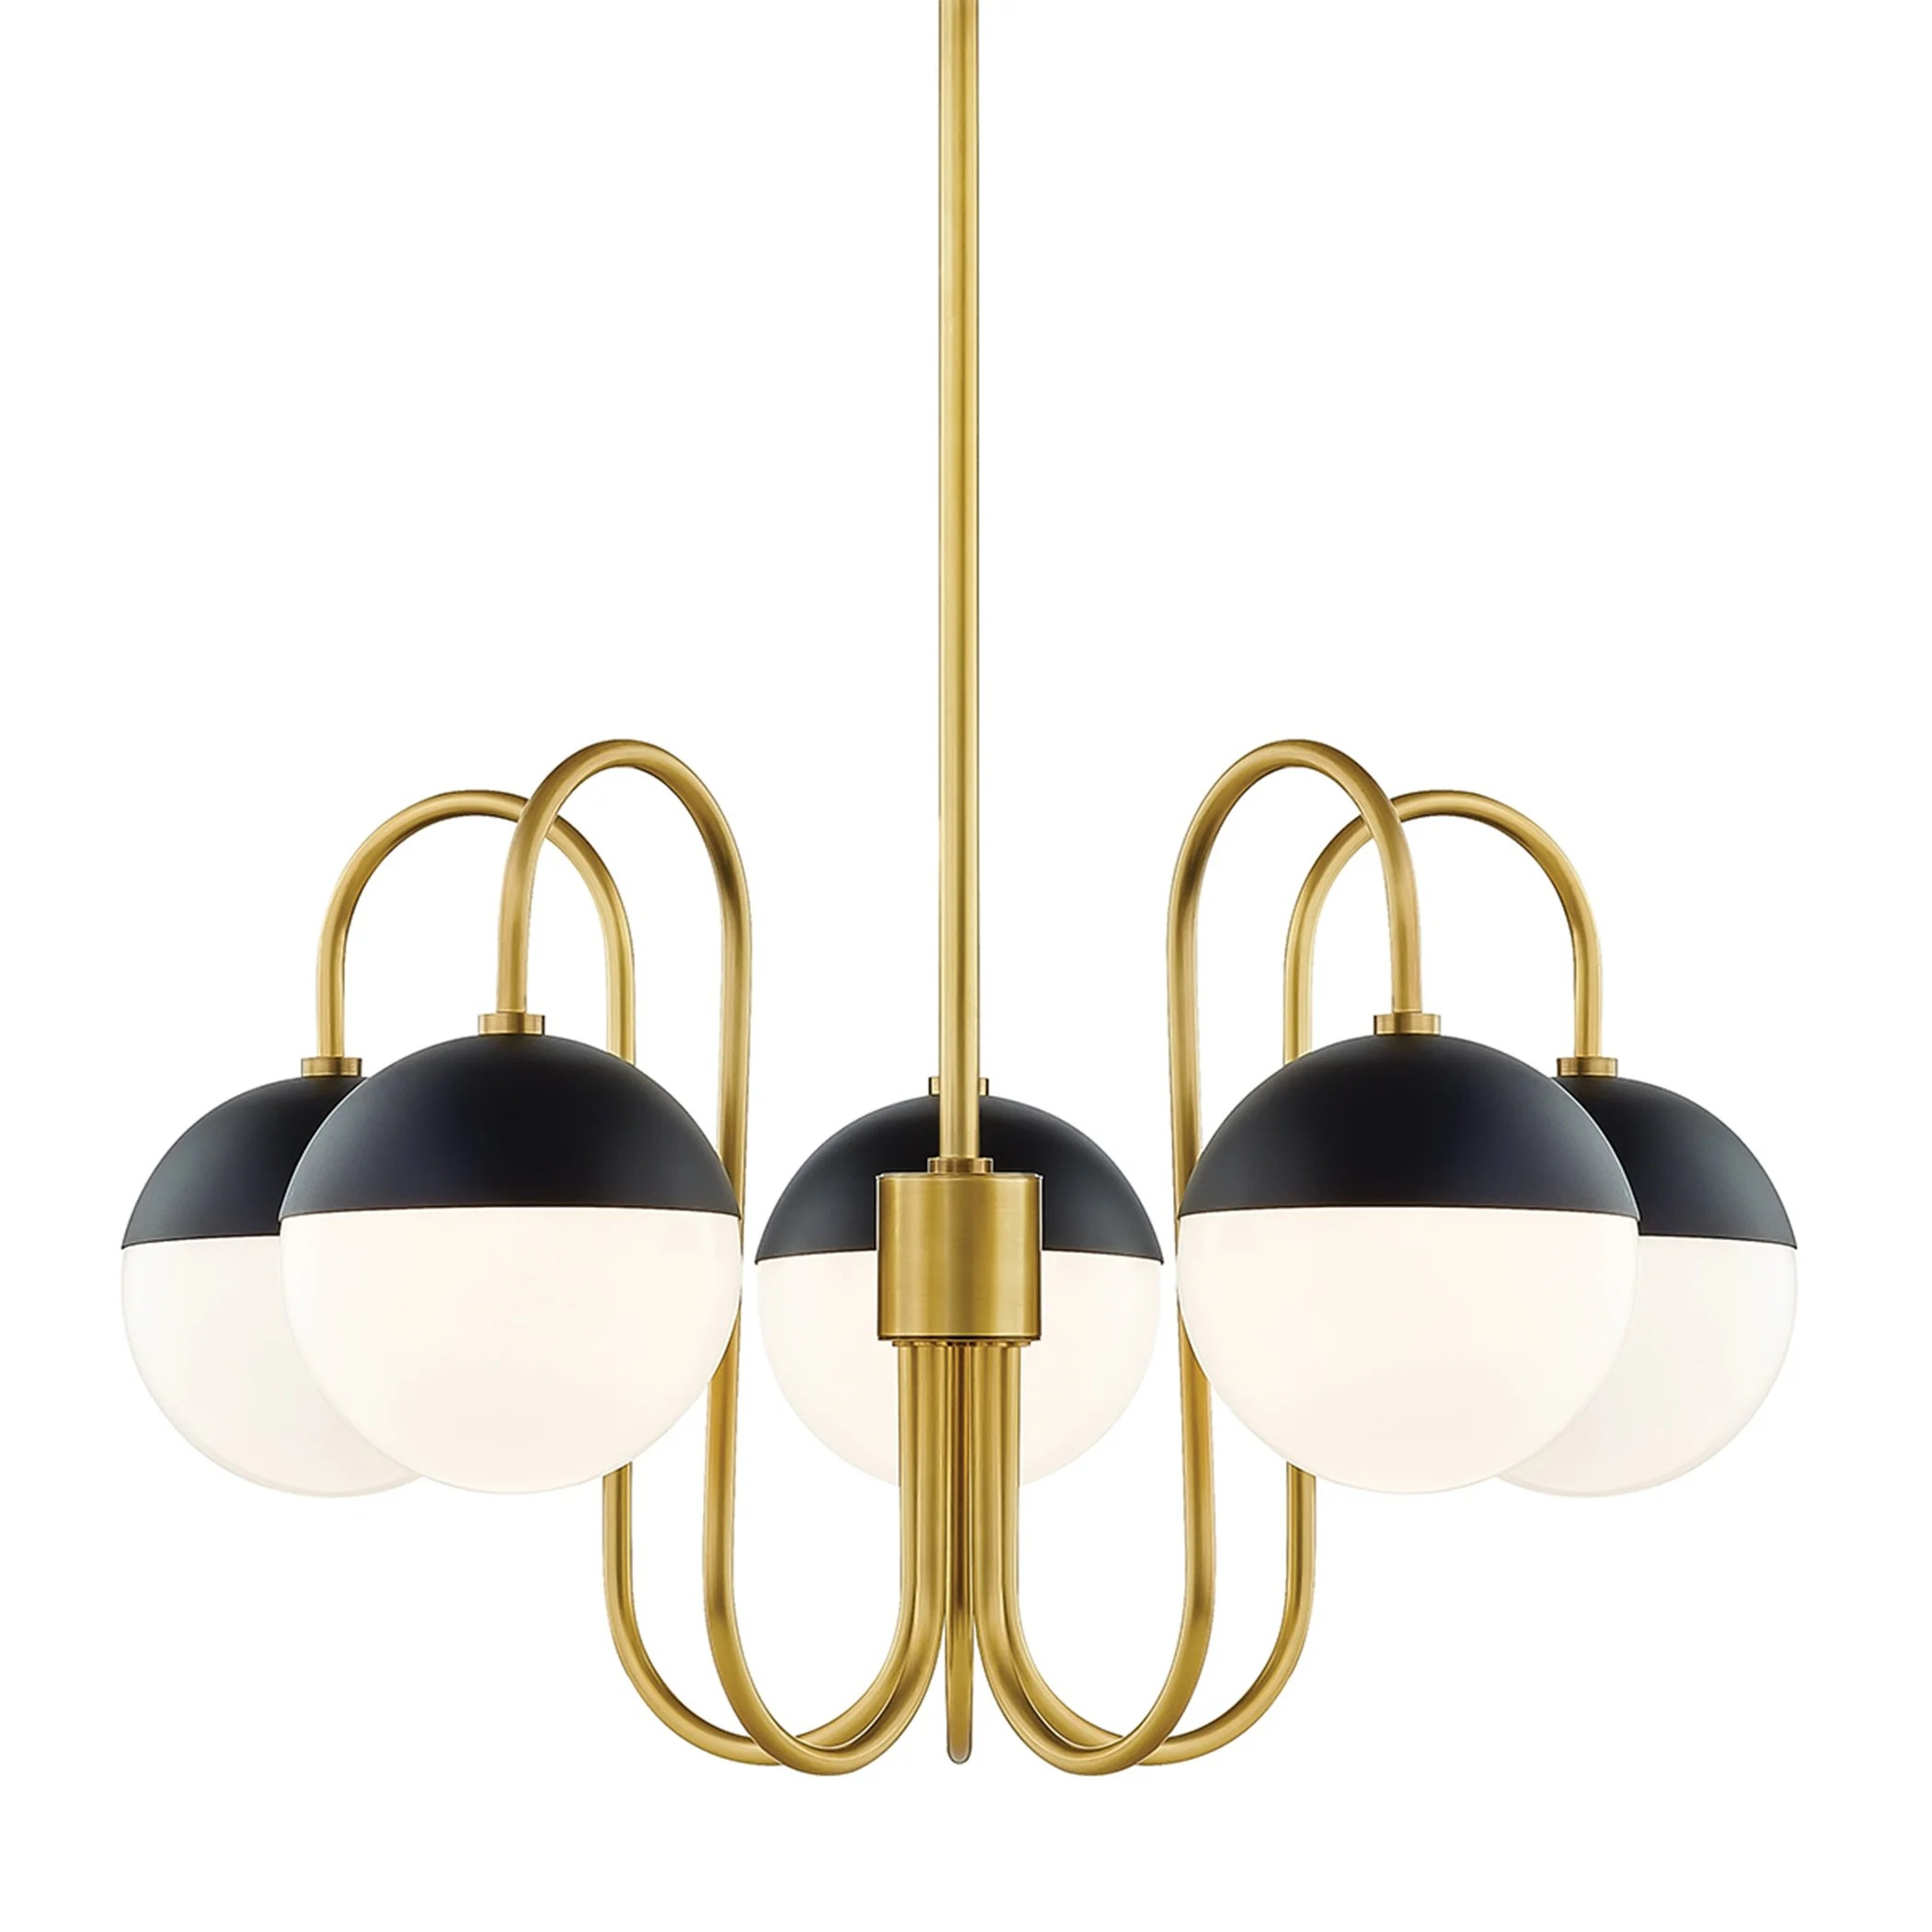 mitzi by hudson valley lighting renee 5 light aged brass and black chandelier opal glossy glass